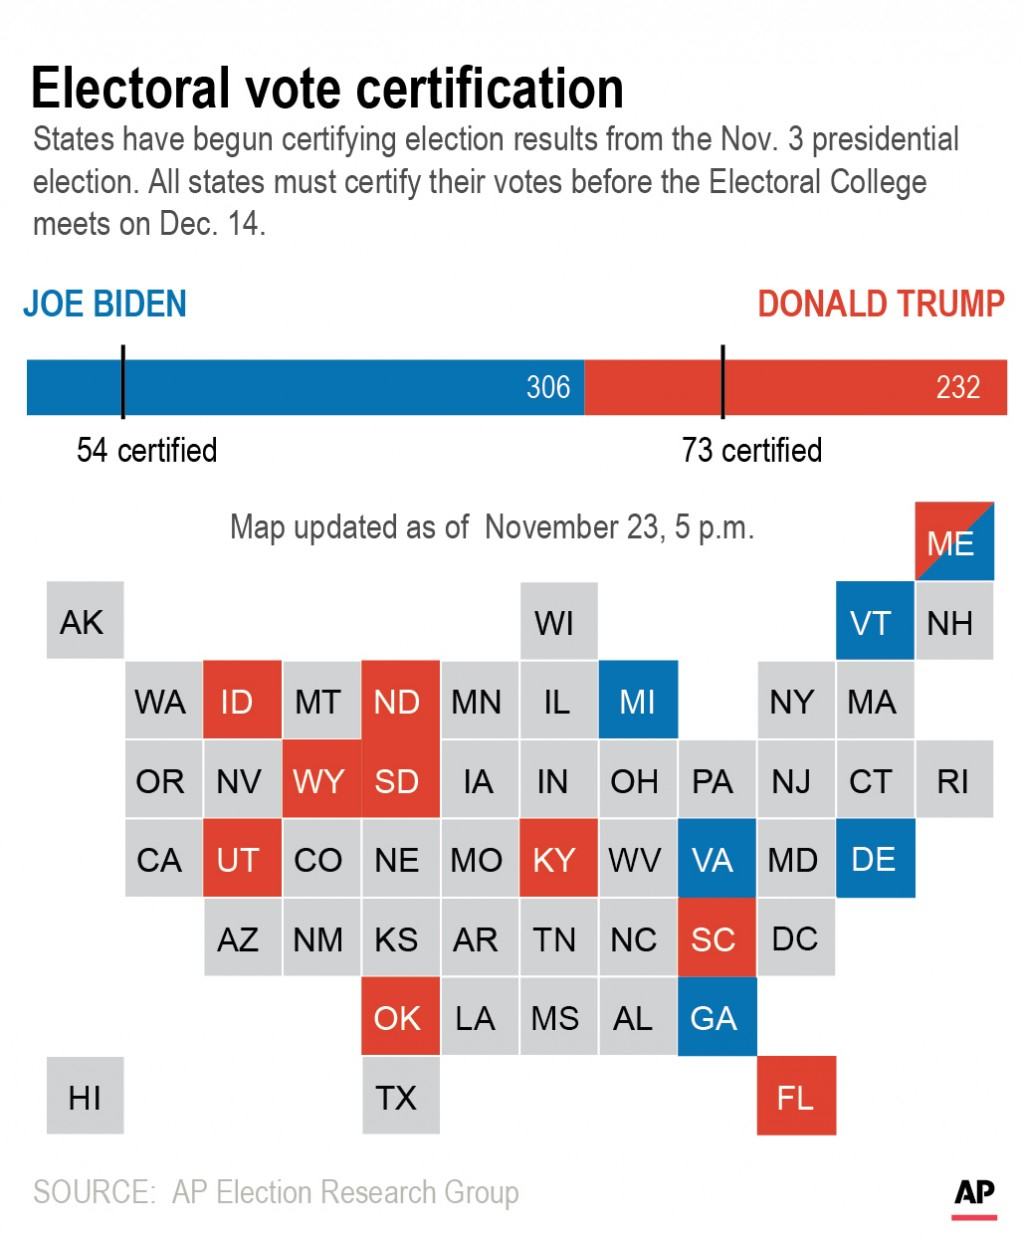 Graphic shows states certified to date